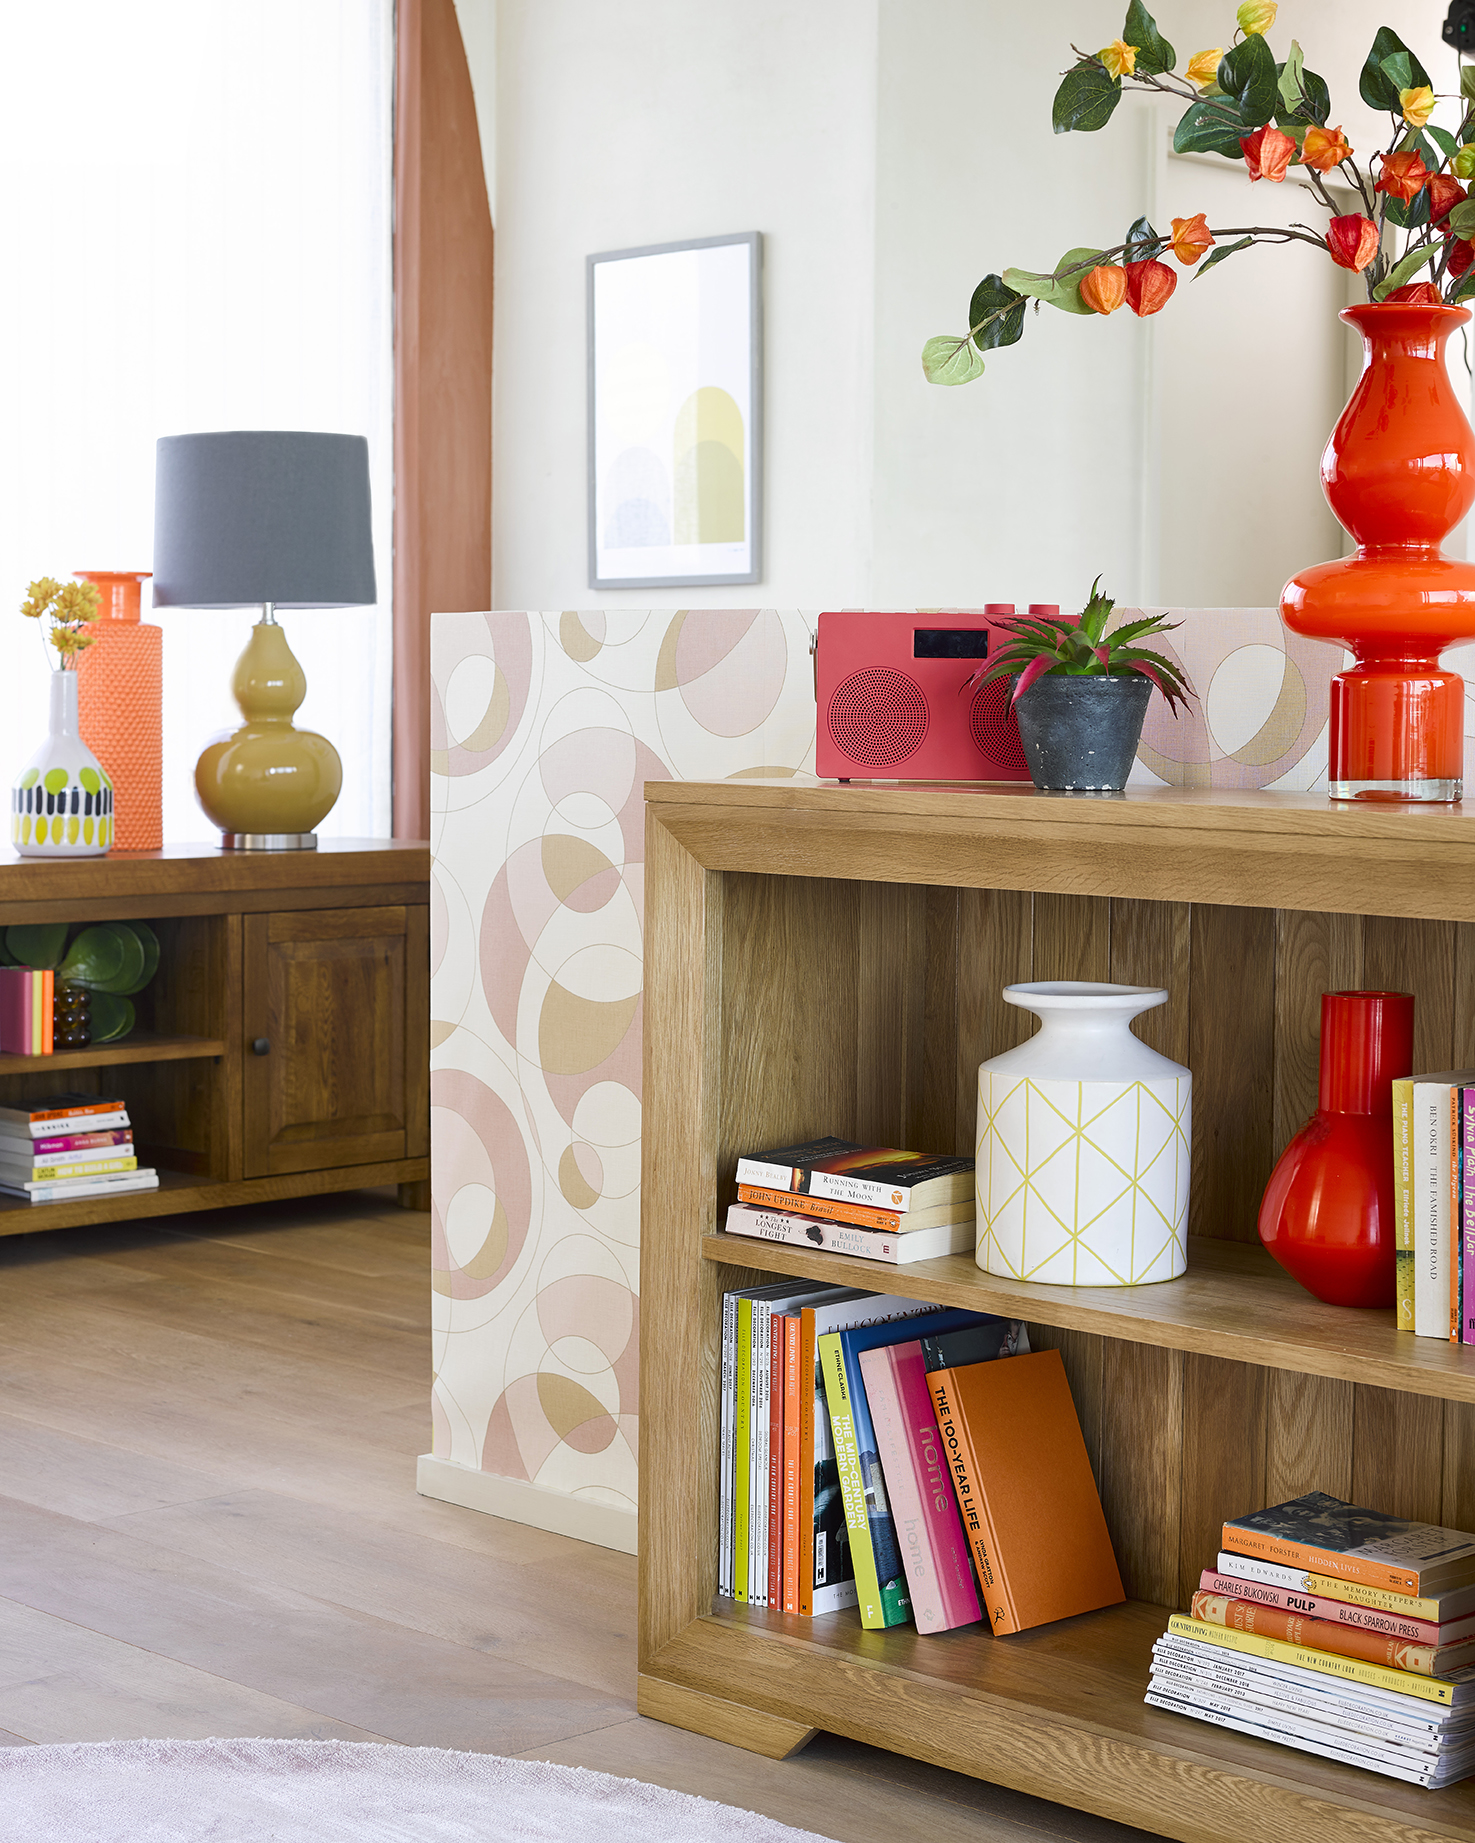 Spiced Curves bookcase in living room